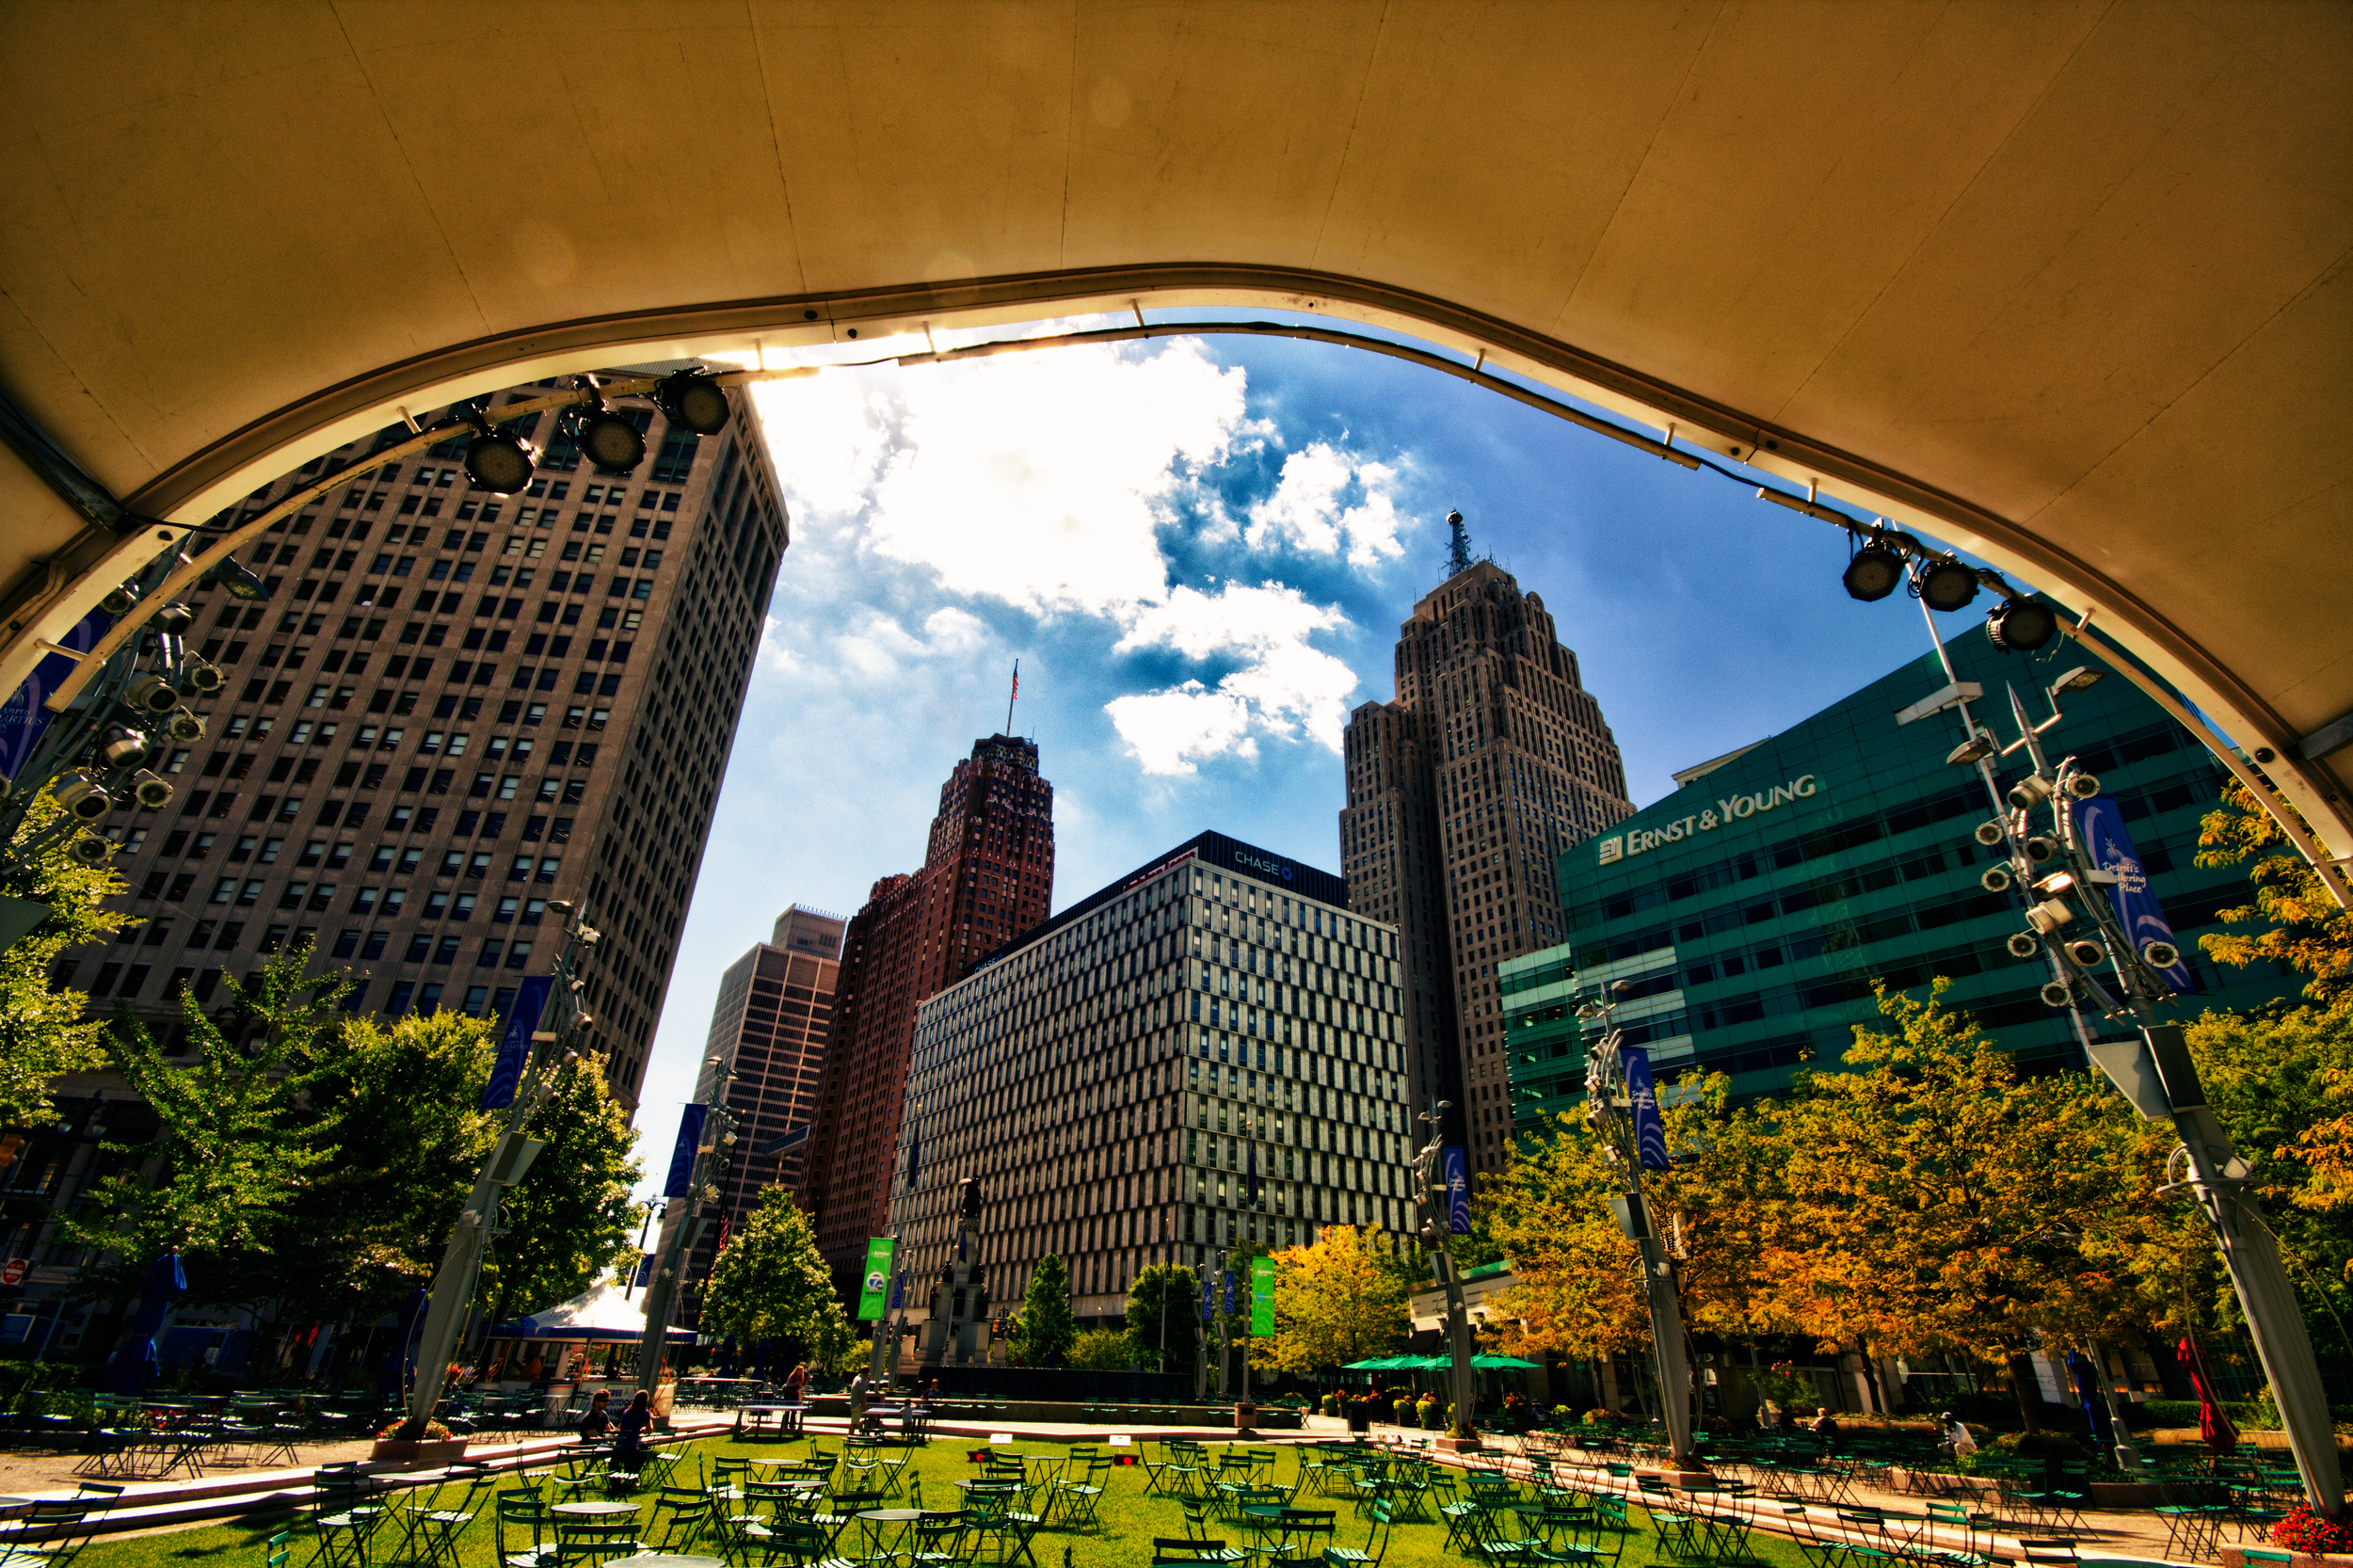 Campus Martius Band Shell